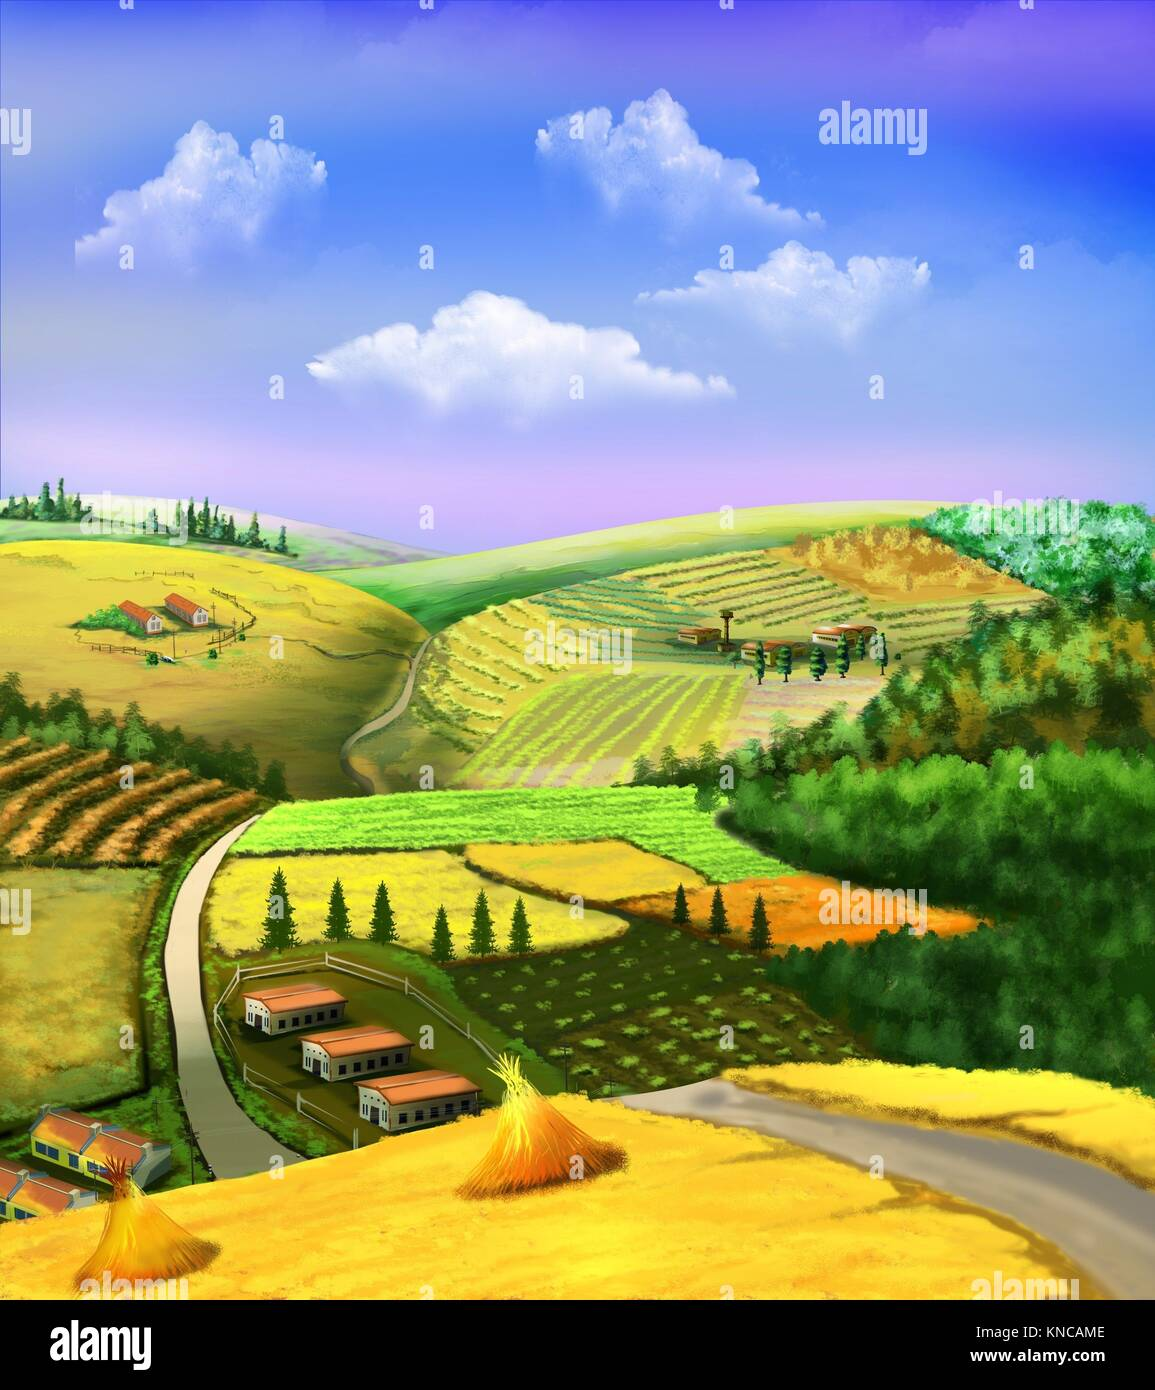 Digital painting of the rural landscape with wheat fields, grove, road and cloudy sky. - Stock Image